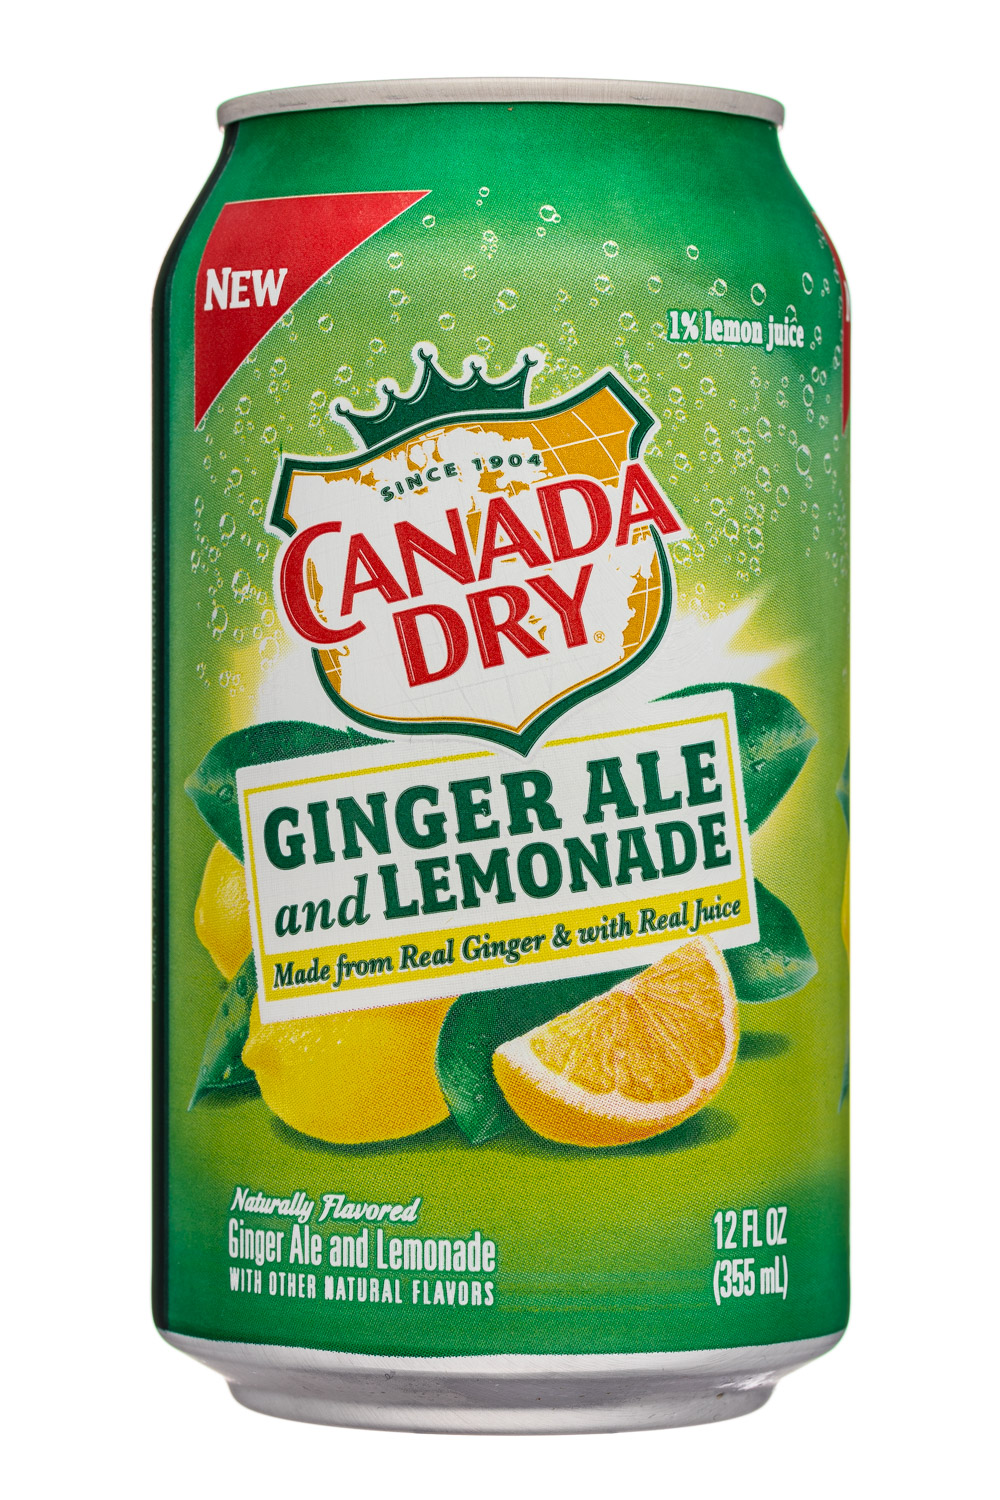 Ginger Ale and Lemonade